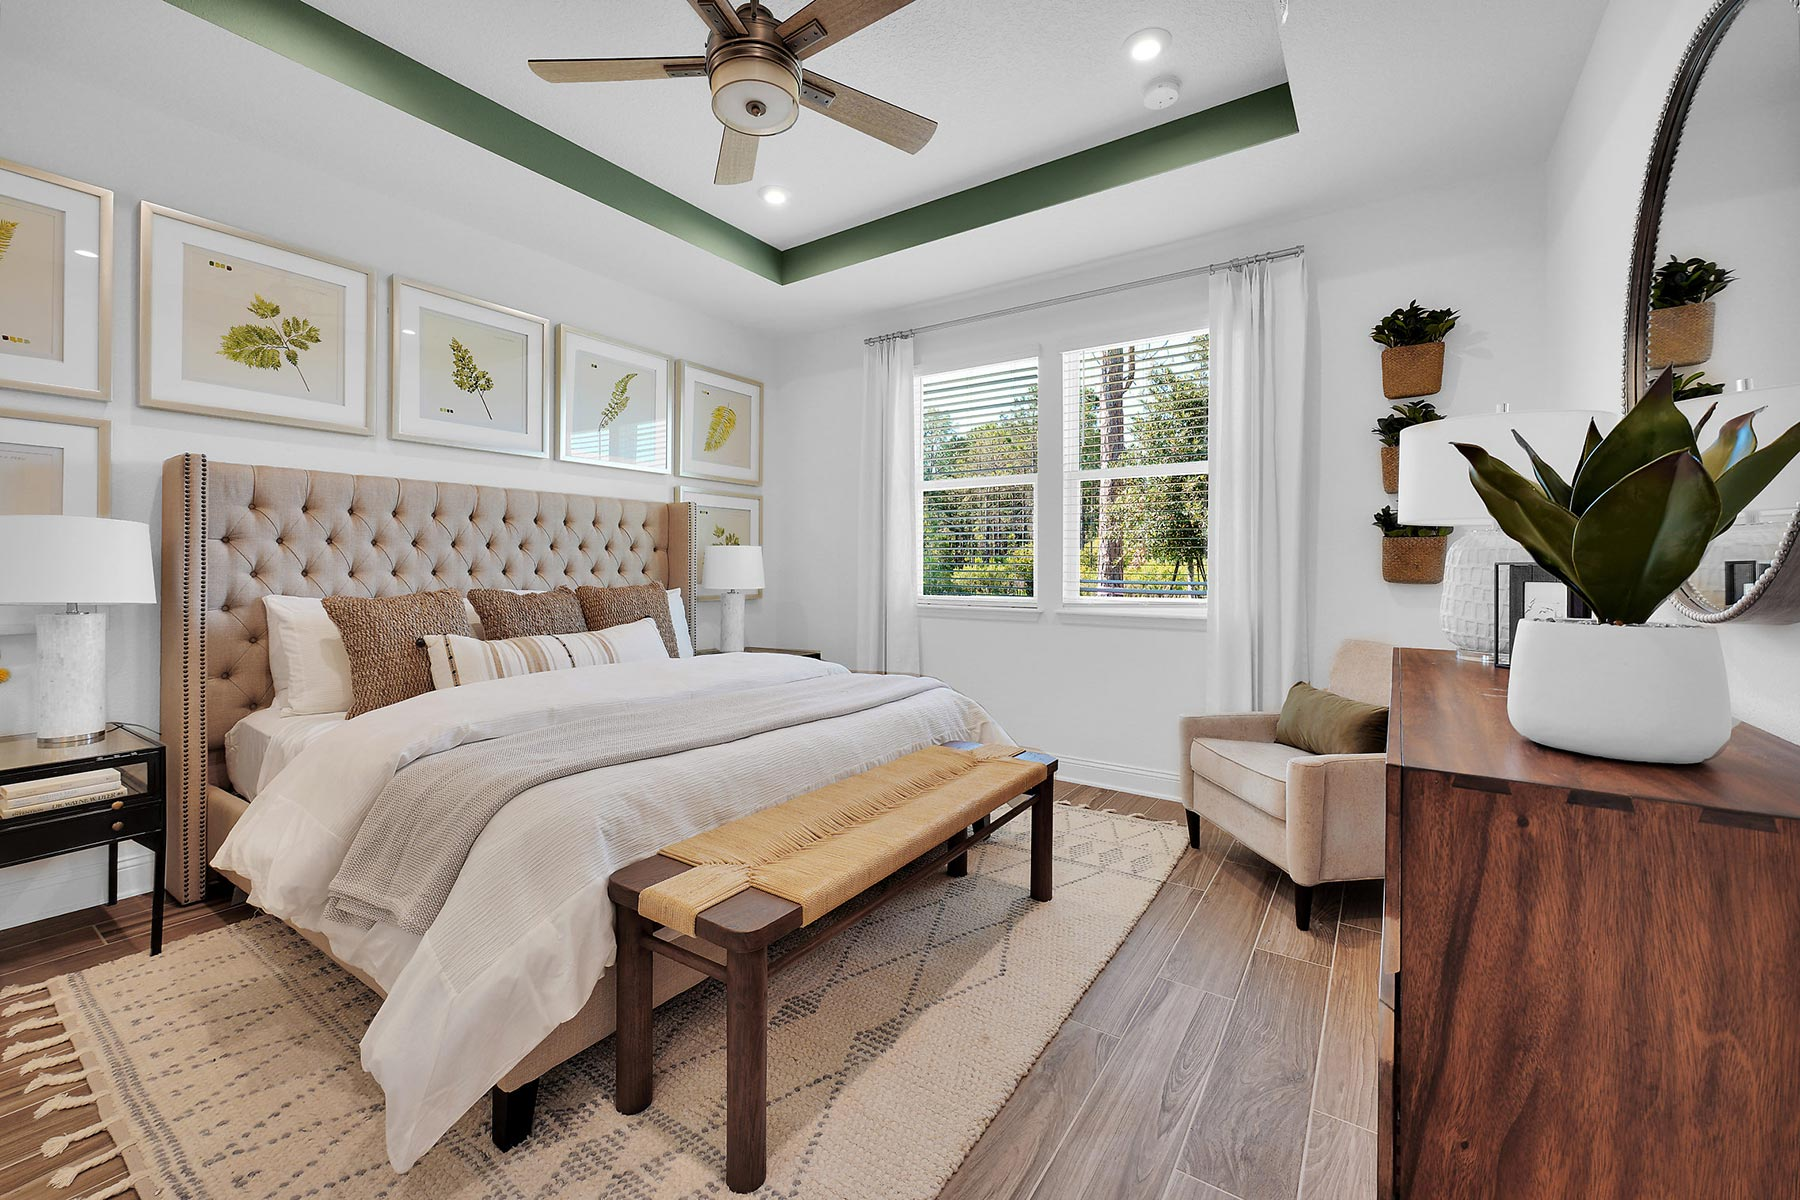 Pablo Cove Bedroom in Jacksonville Florida by Mattamy Homes